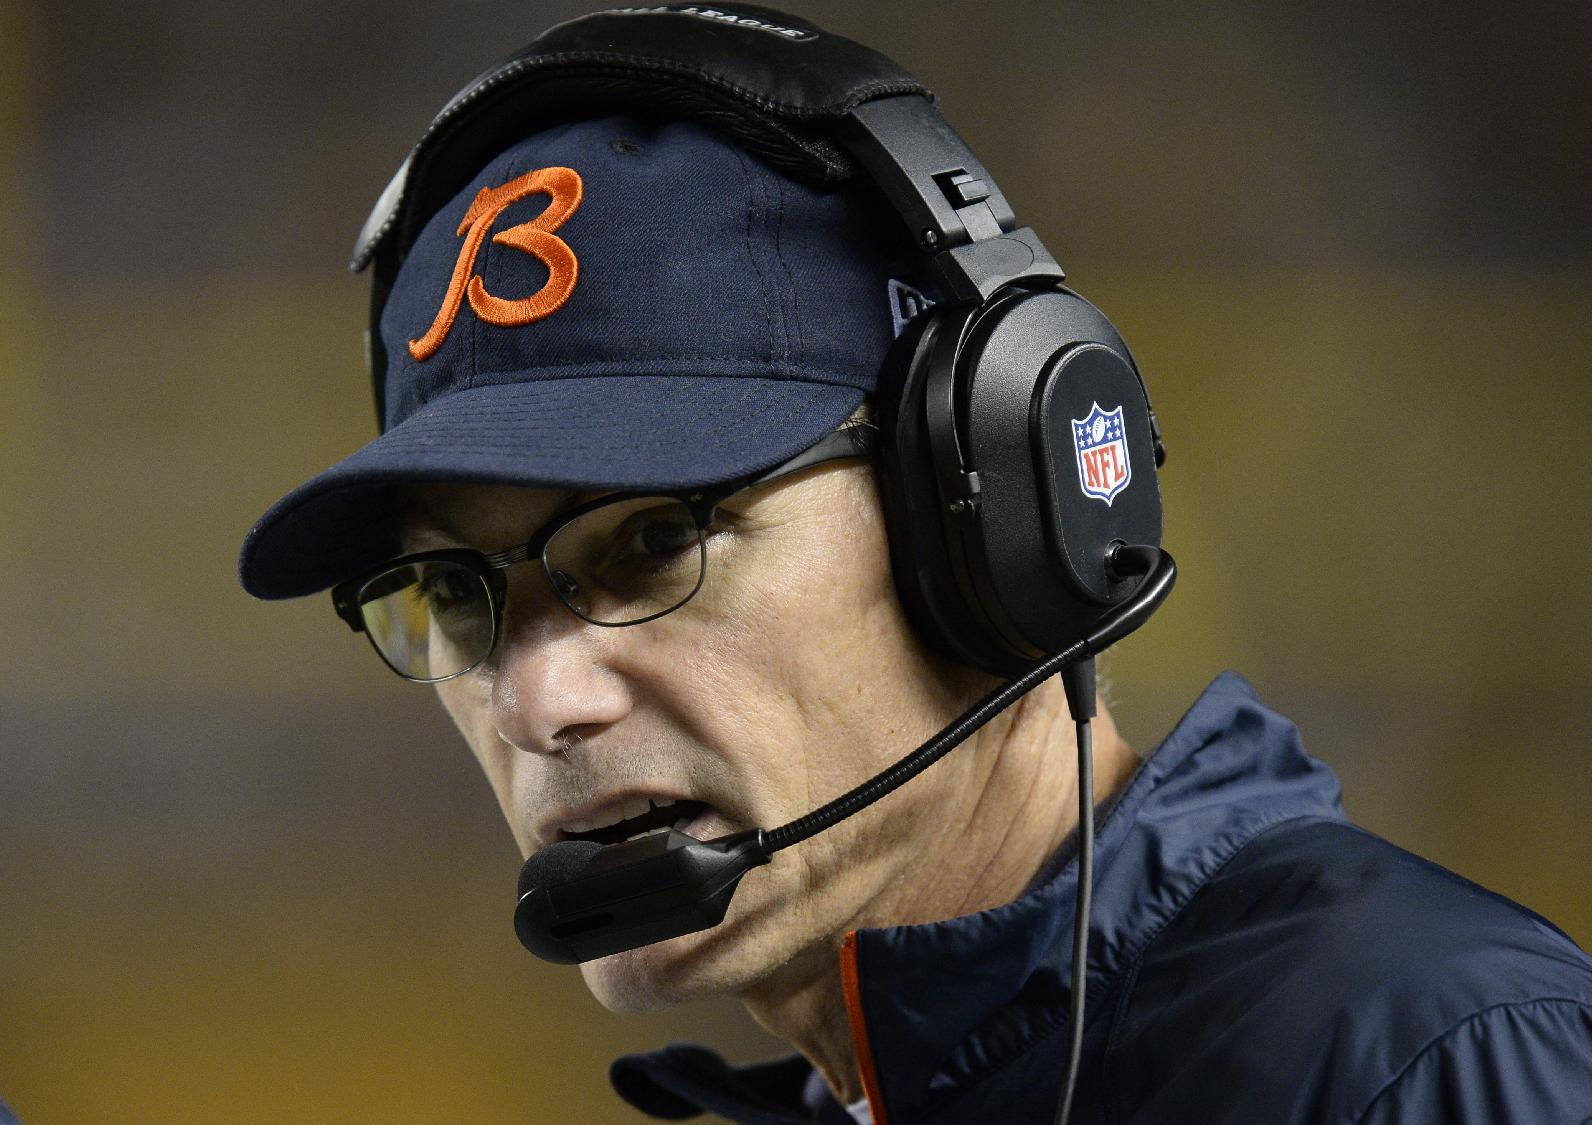 Chicago Bears head coach Marc Trestman on the sideline during the third quarter of an NFL football game against the Pittsburgh Steelers  on Sunday, Sept. 22, 2013, in Pittsburgh. The Bears won 40-23